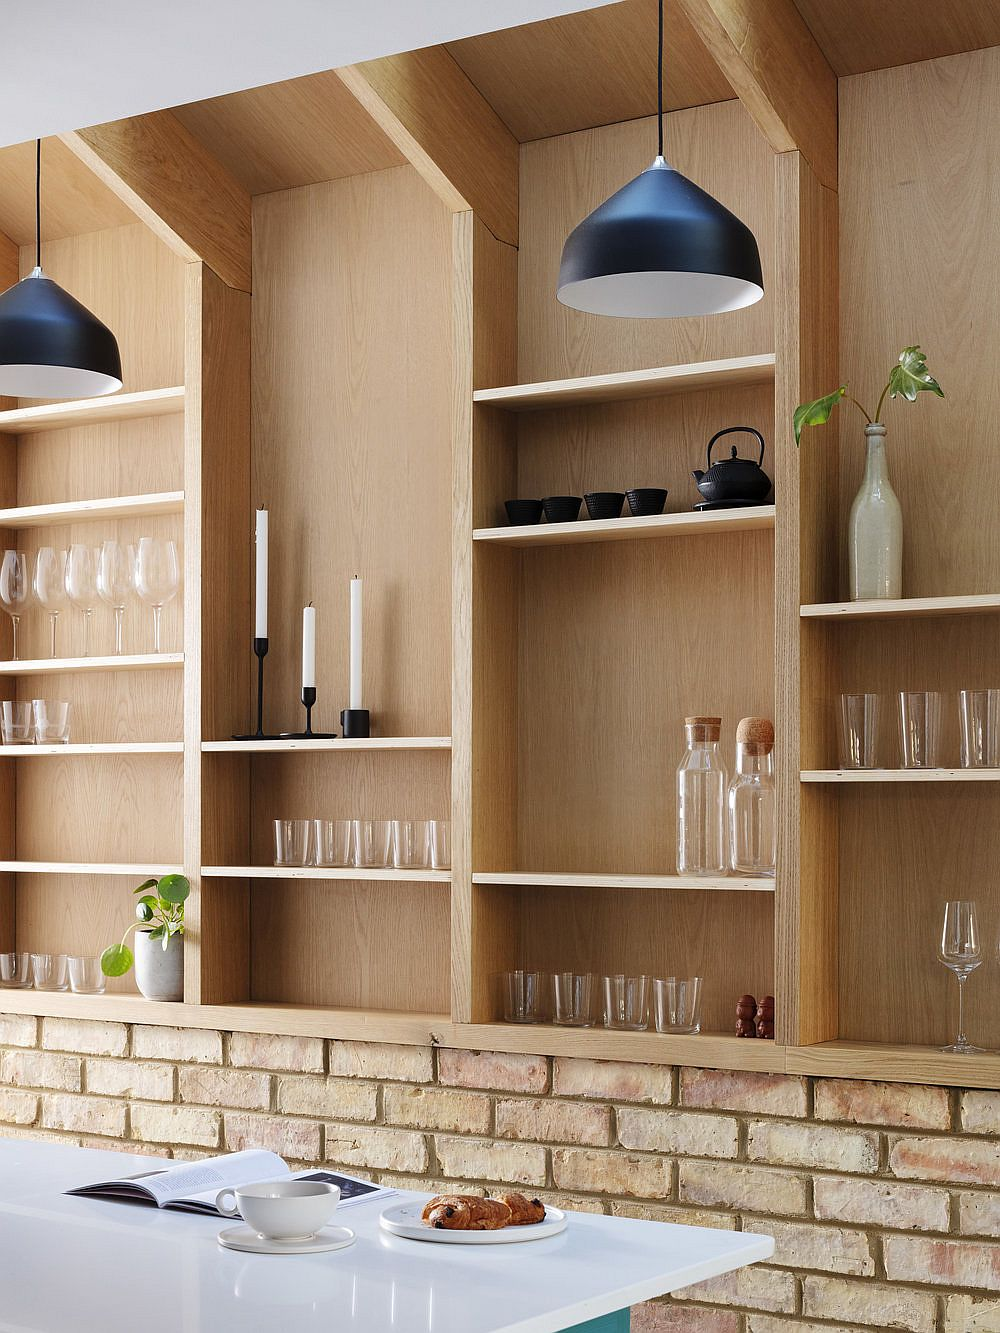 Pendants-in-black-add-visual-contrast-to-the-interior-draped-in-wood-and-brick-83569